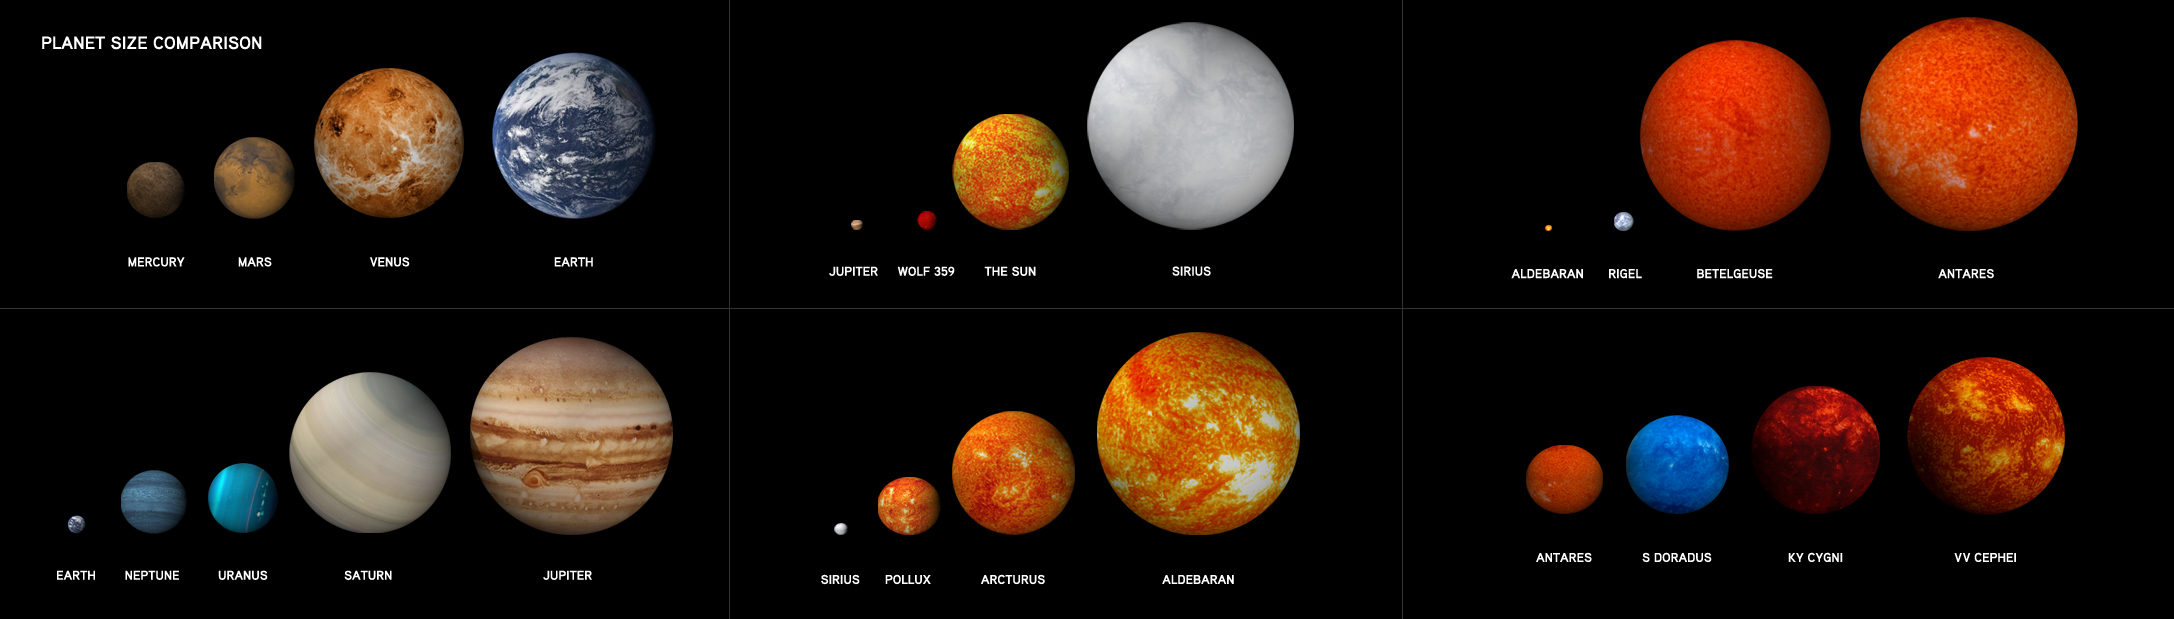 difference between stars and planets with comparison - 2174×619